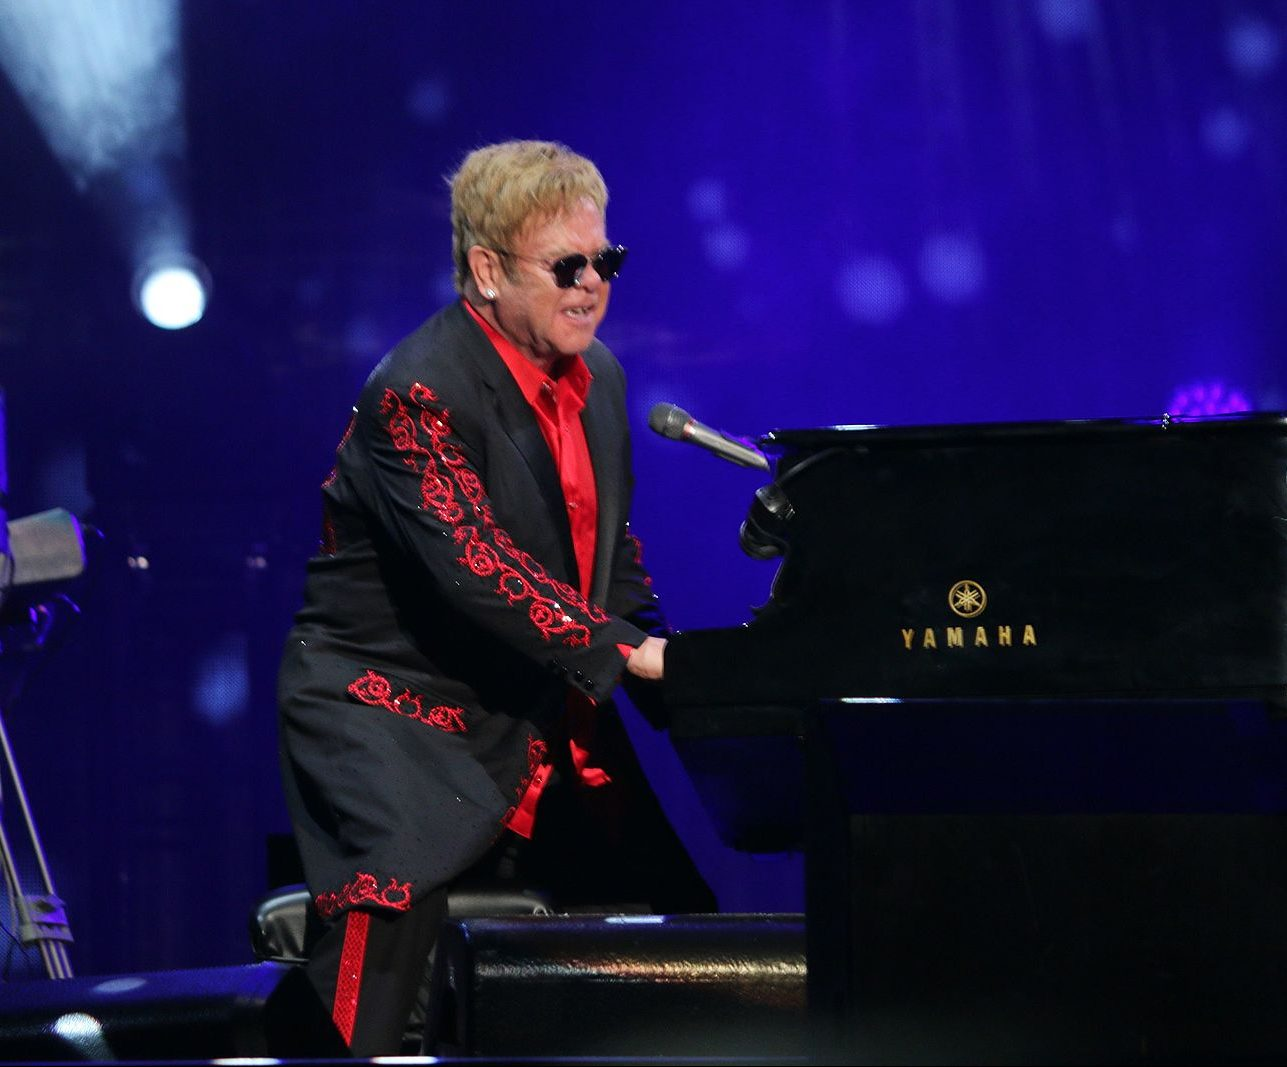 1 20 e1616667594767 23 Things You Didn't Know About Elton John